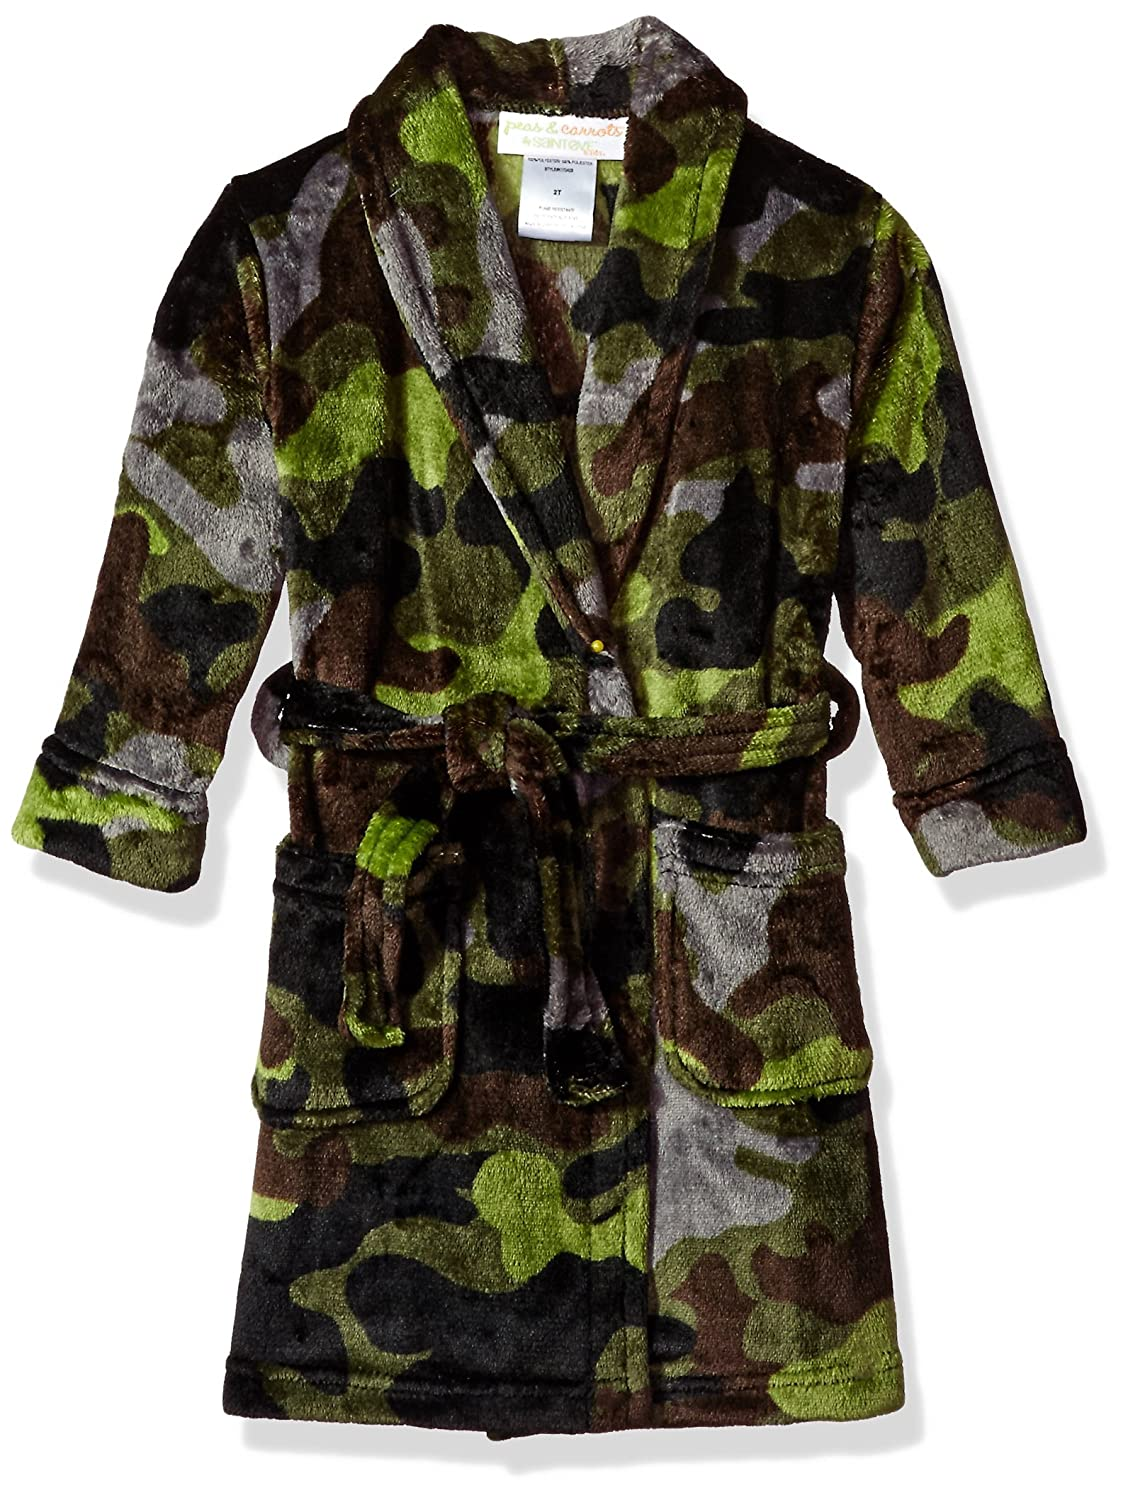 Toddlers Size 3T Komar Kids Peas /& Carrots Toddler Boys Camo Velvet Fleece Robe